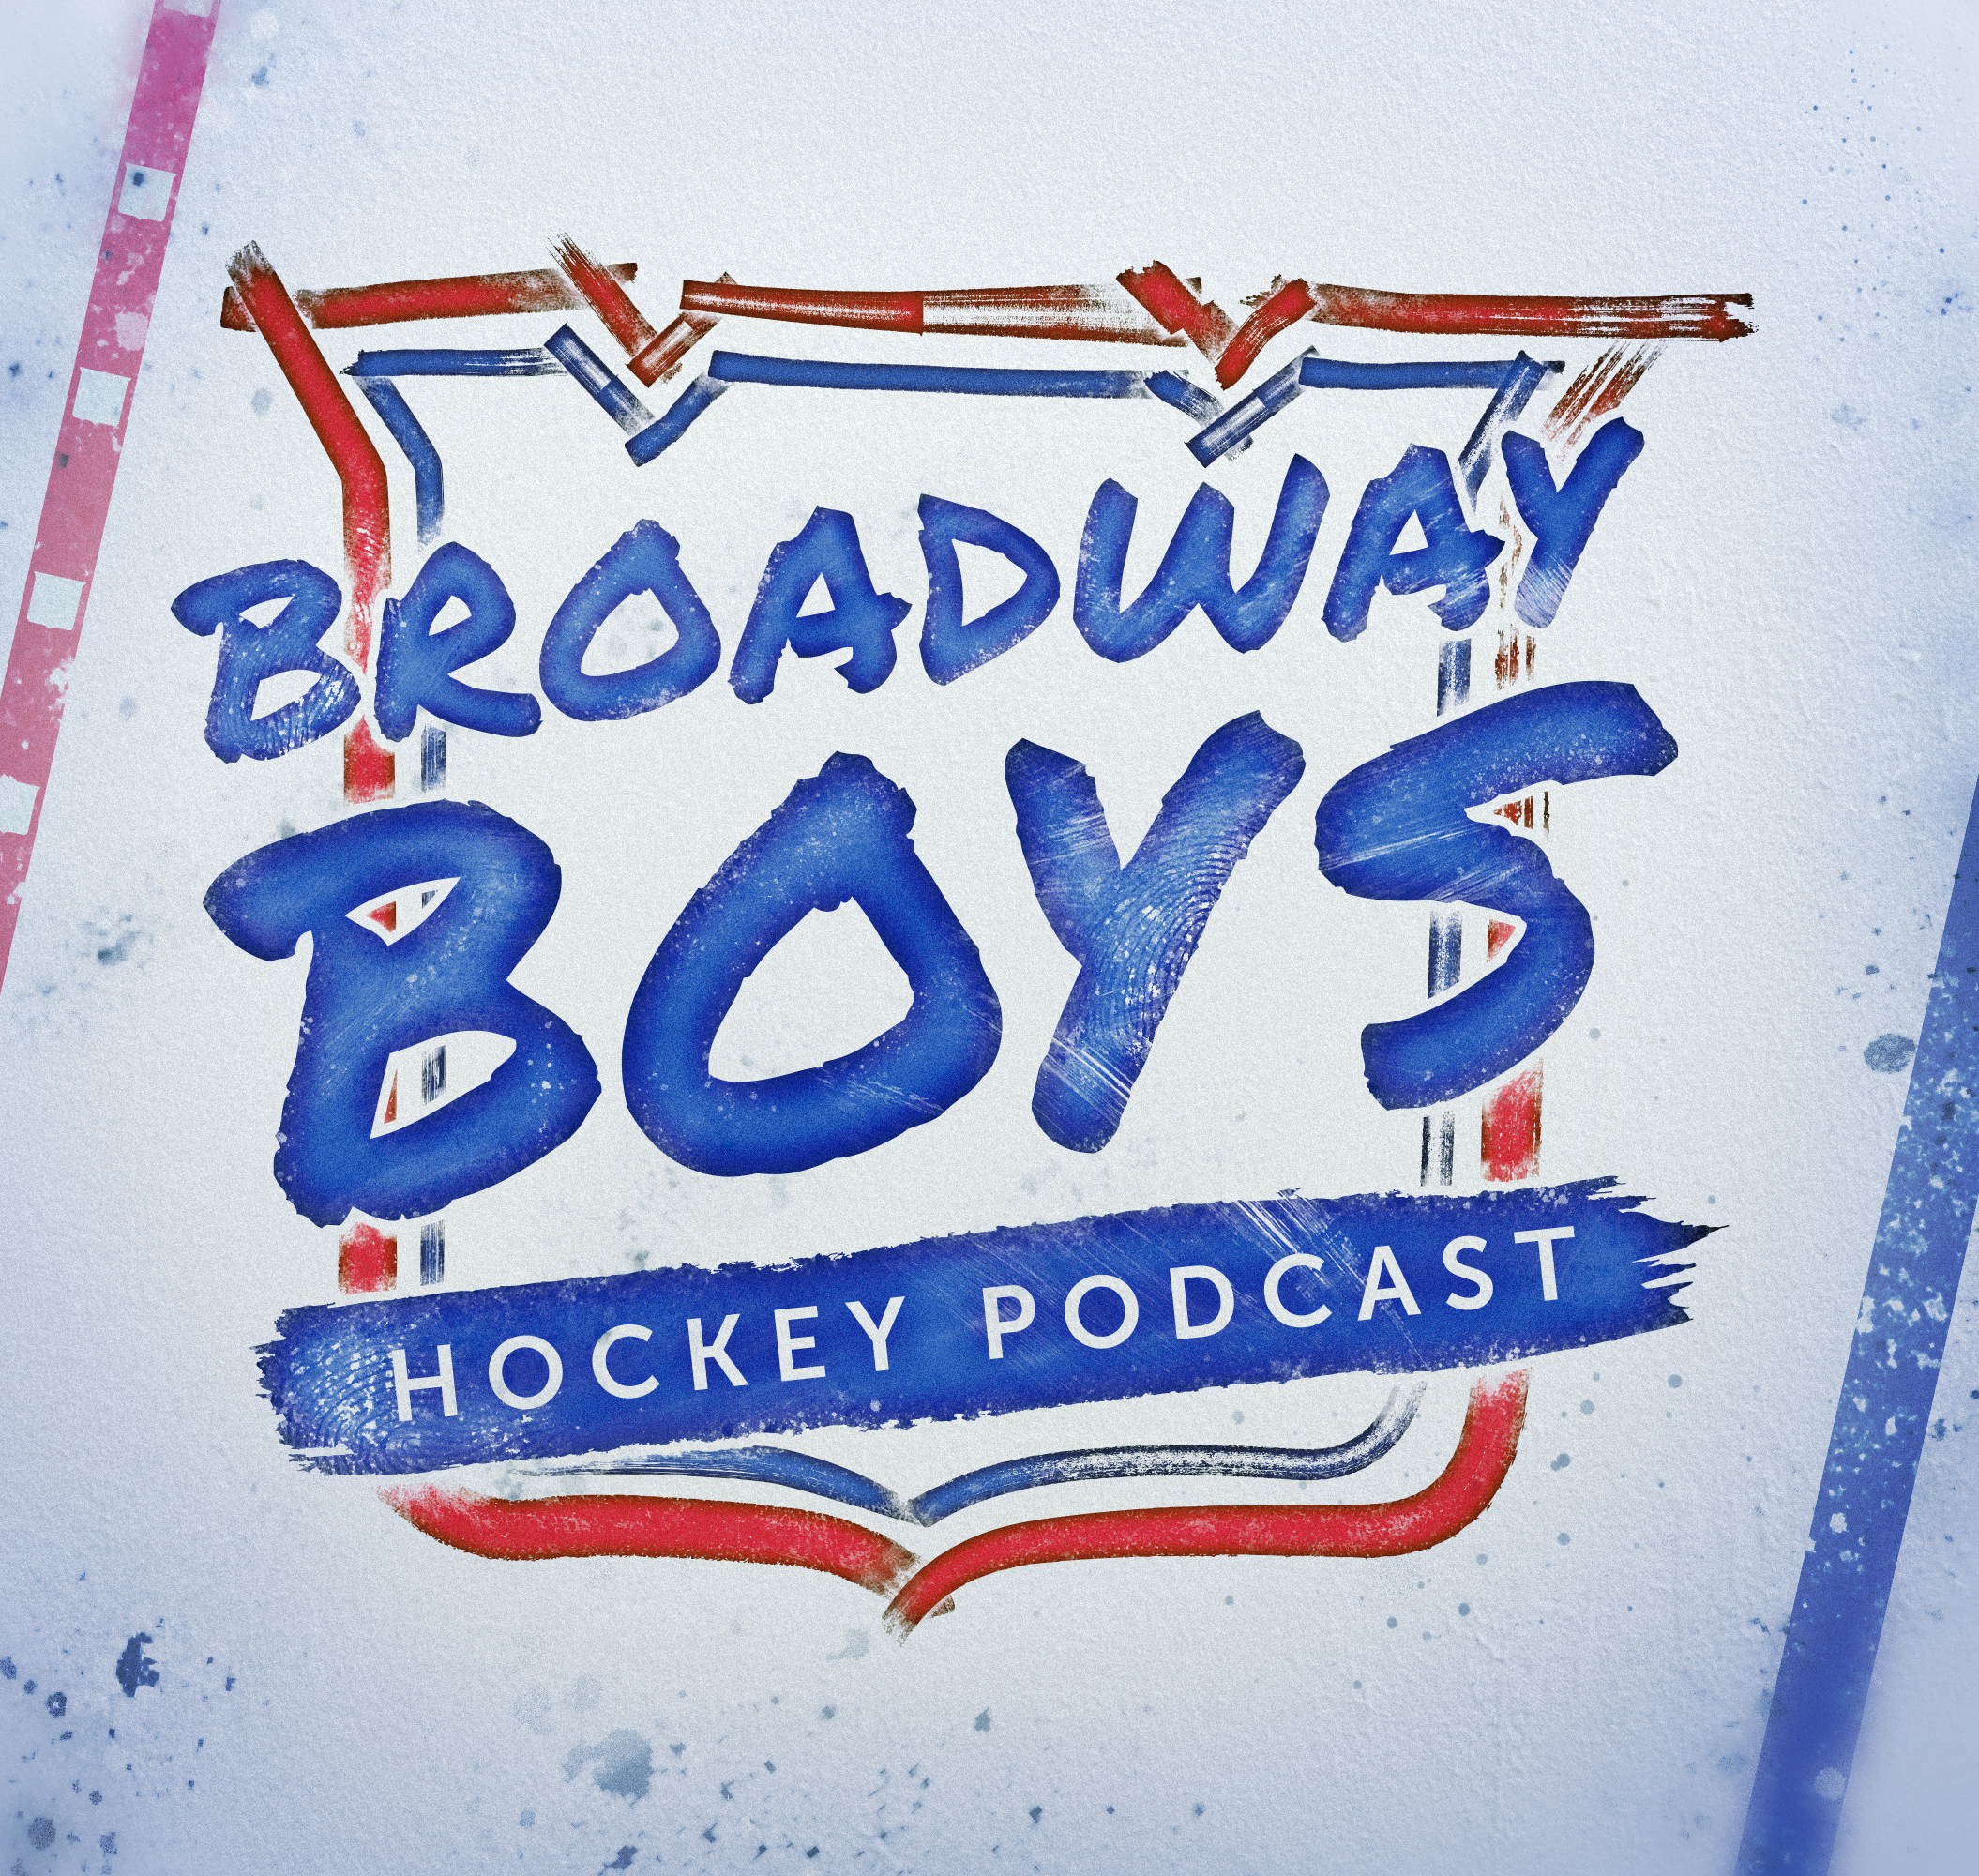 New York Rangers - Broadway Boys Hockey Podcast - EP52 - S1